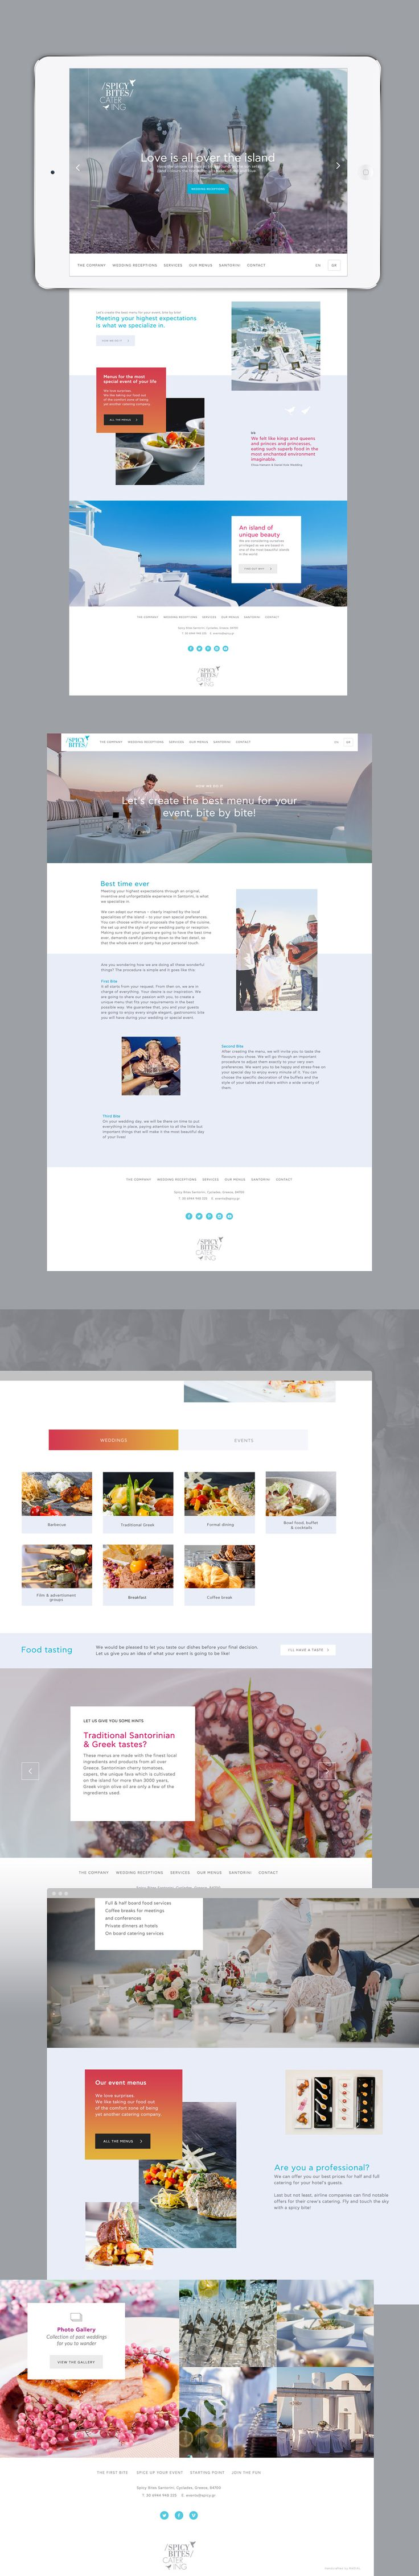 In the breathtaking surroundings of Santorini, Spicy Bites Catering adds the touch of taste and style that all special moments deserve. Inspired by the sophistication characterizing every single work of the Spicy Bites Catering, we designed and developed a website that is a journey by itself.